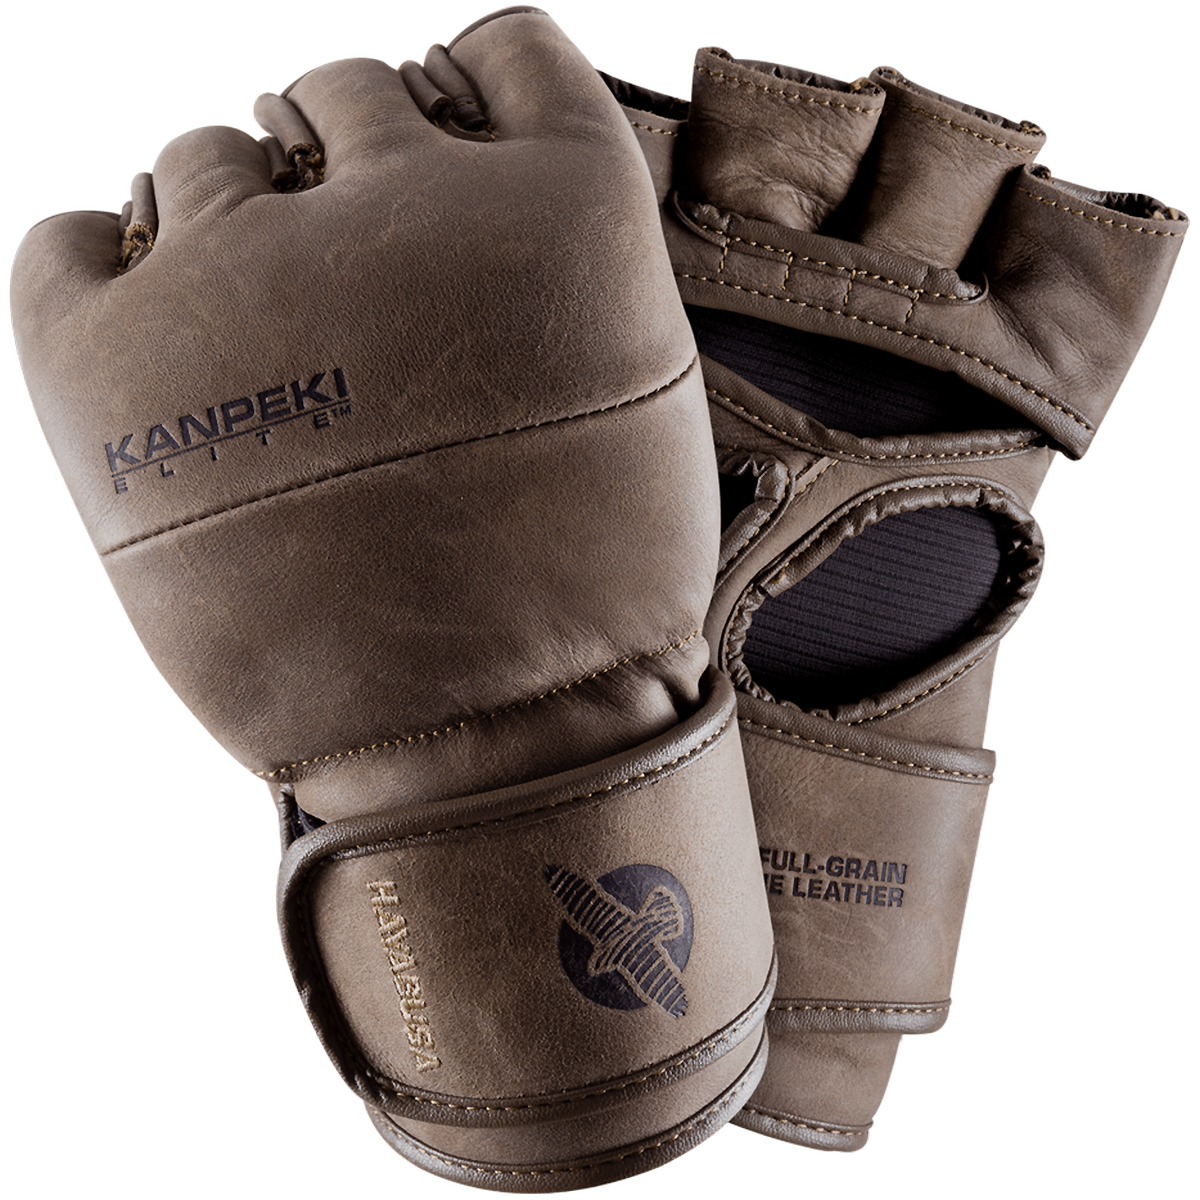 Hayabusa Kanpeki Elite 3 4 oz. MMA Hook and Loop Gloves - Brown